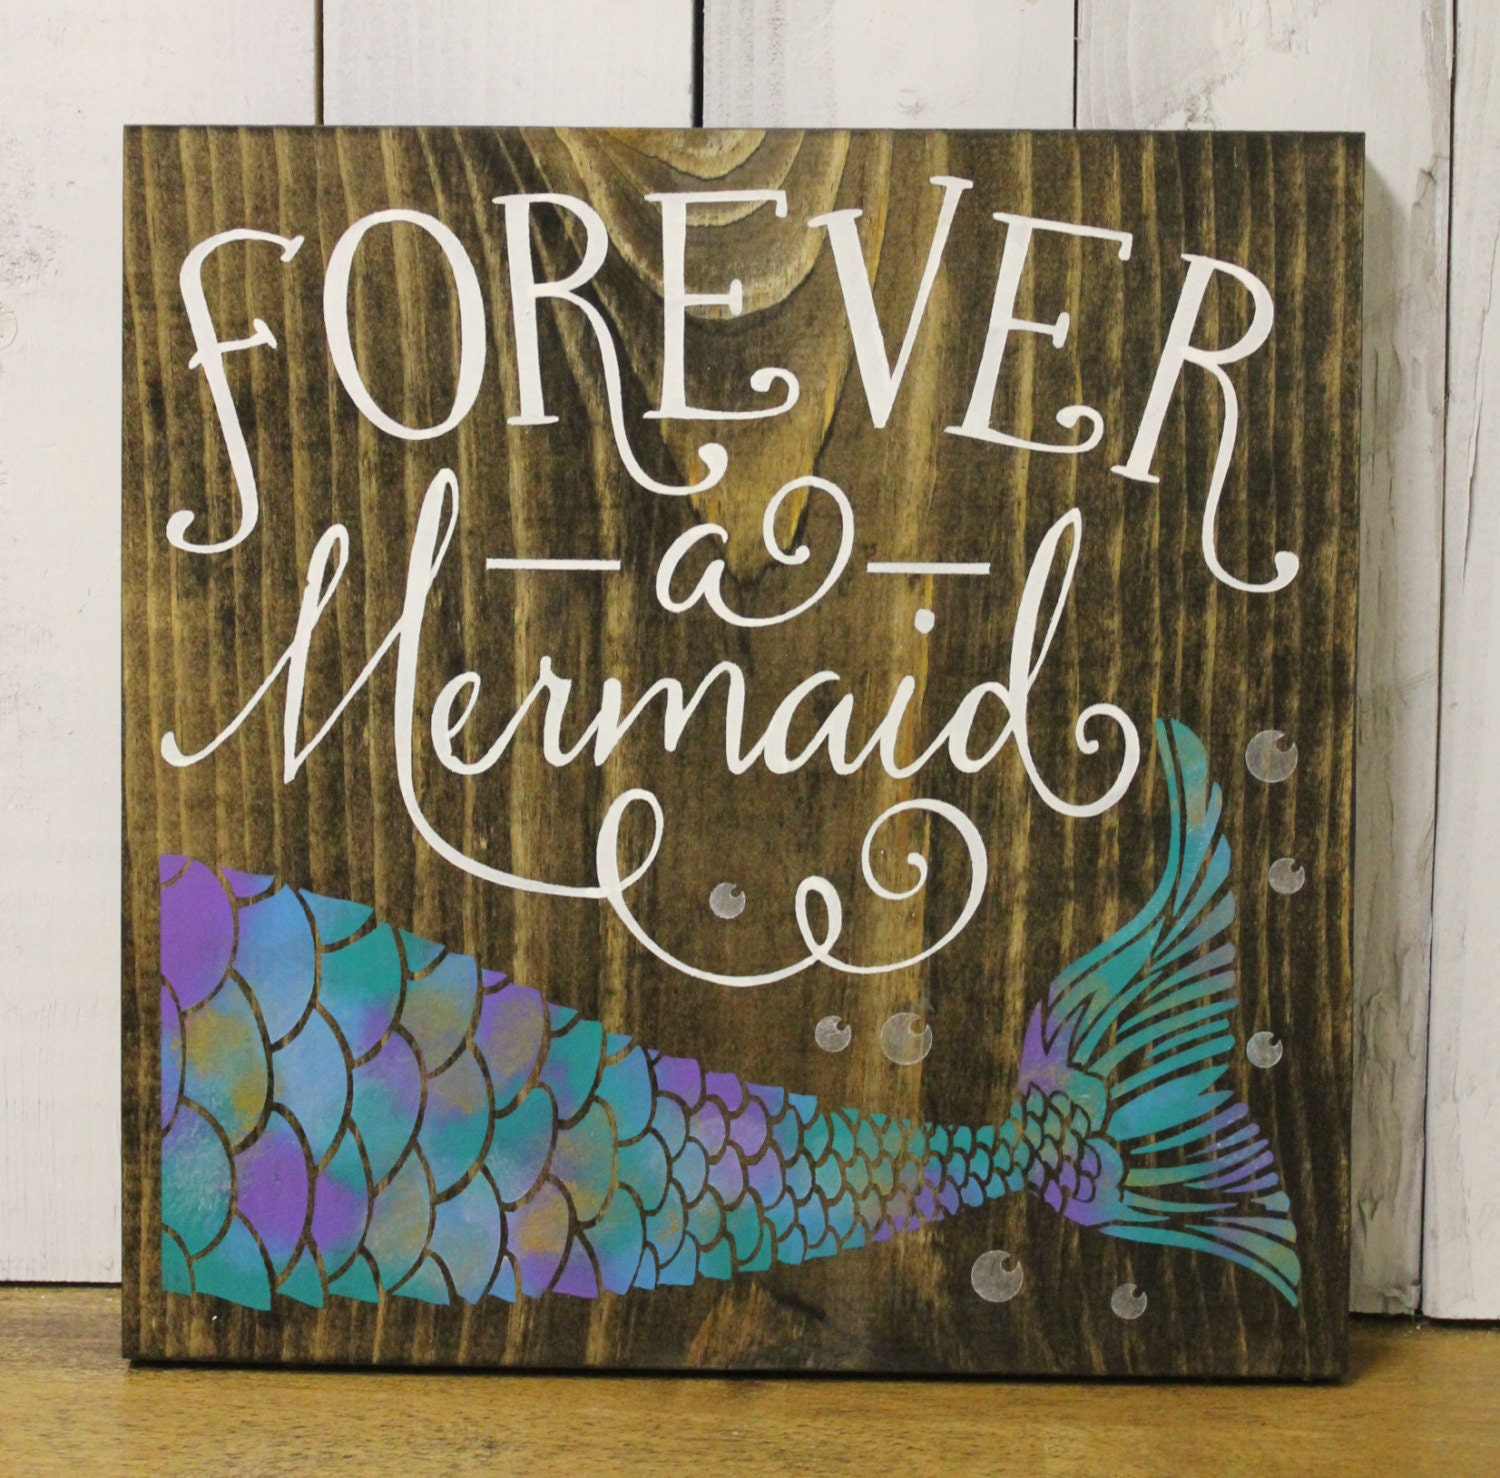 On sale forever a mermaid bathroom sign pool sign ocean sign navy blue wood sign mermaid girls